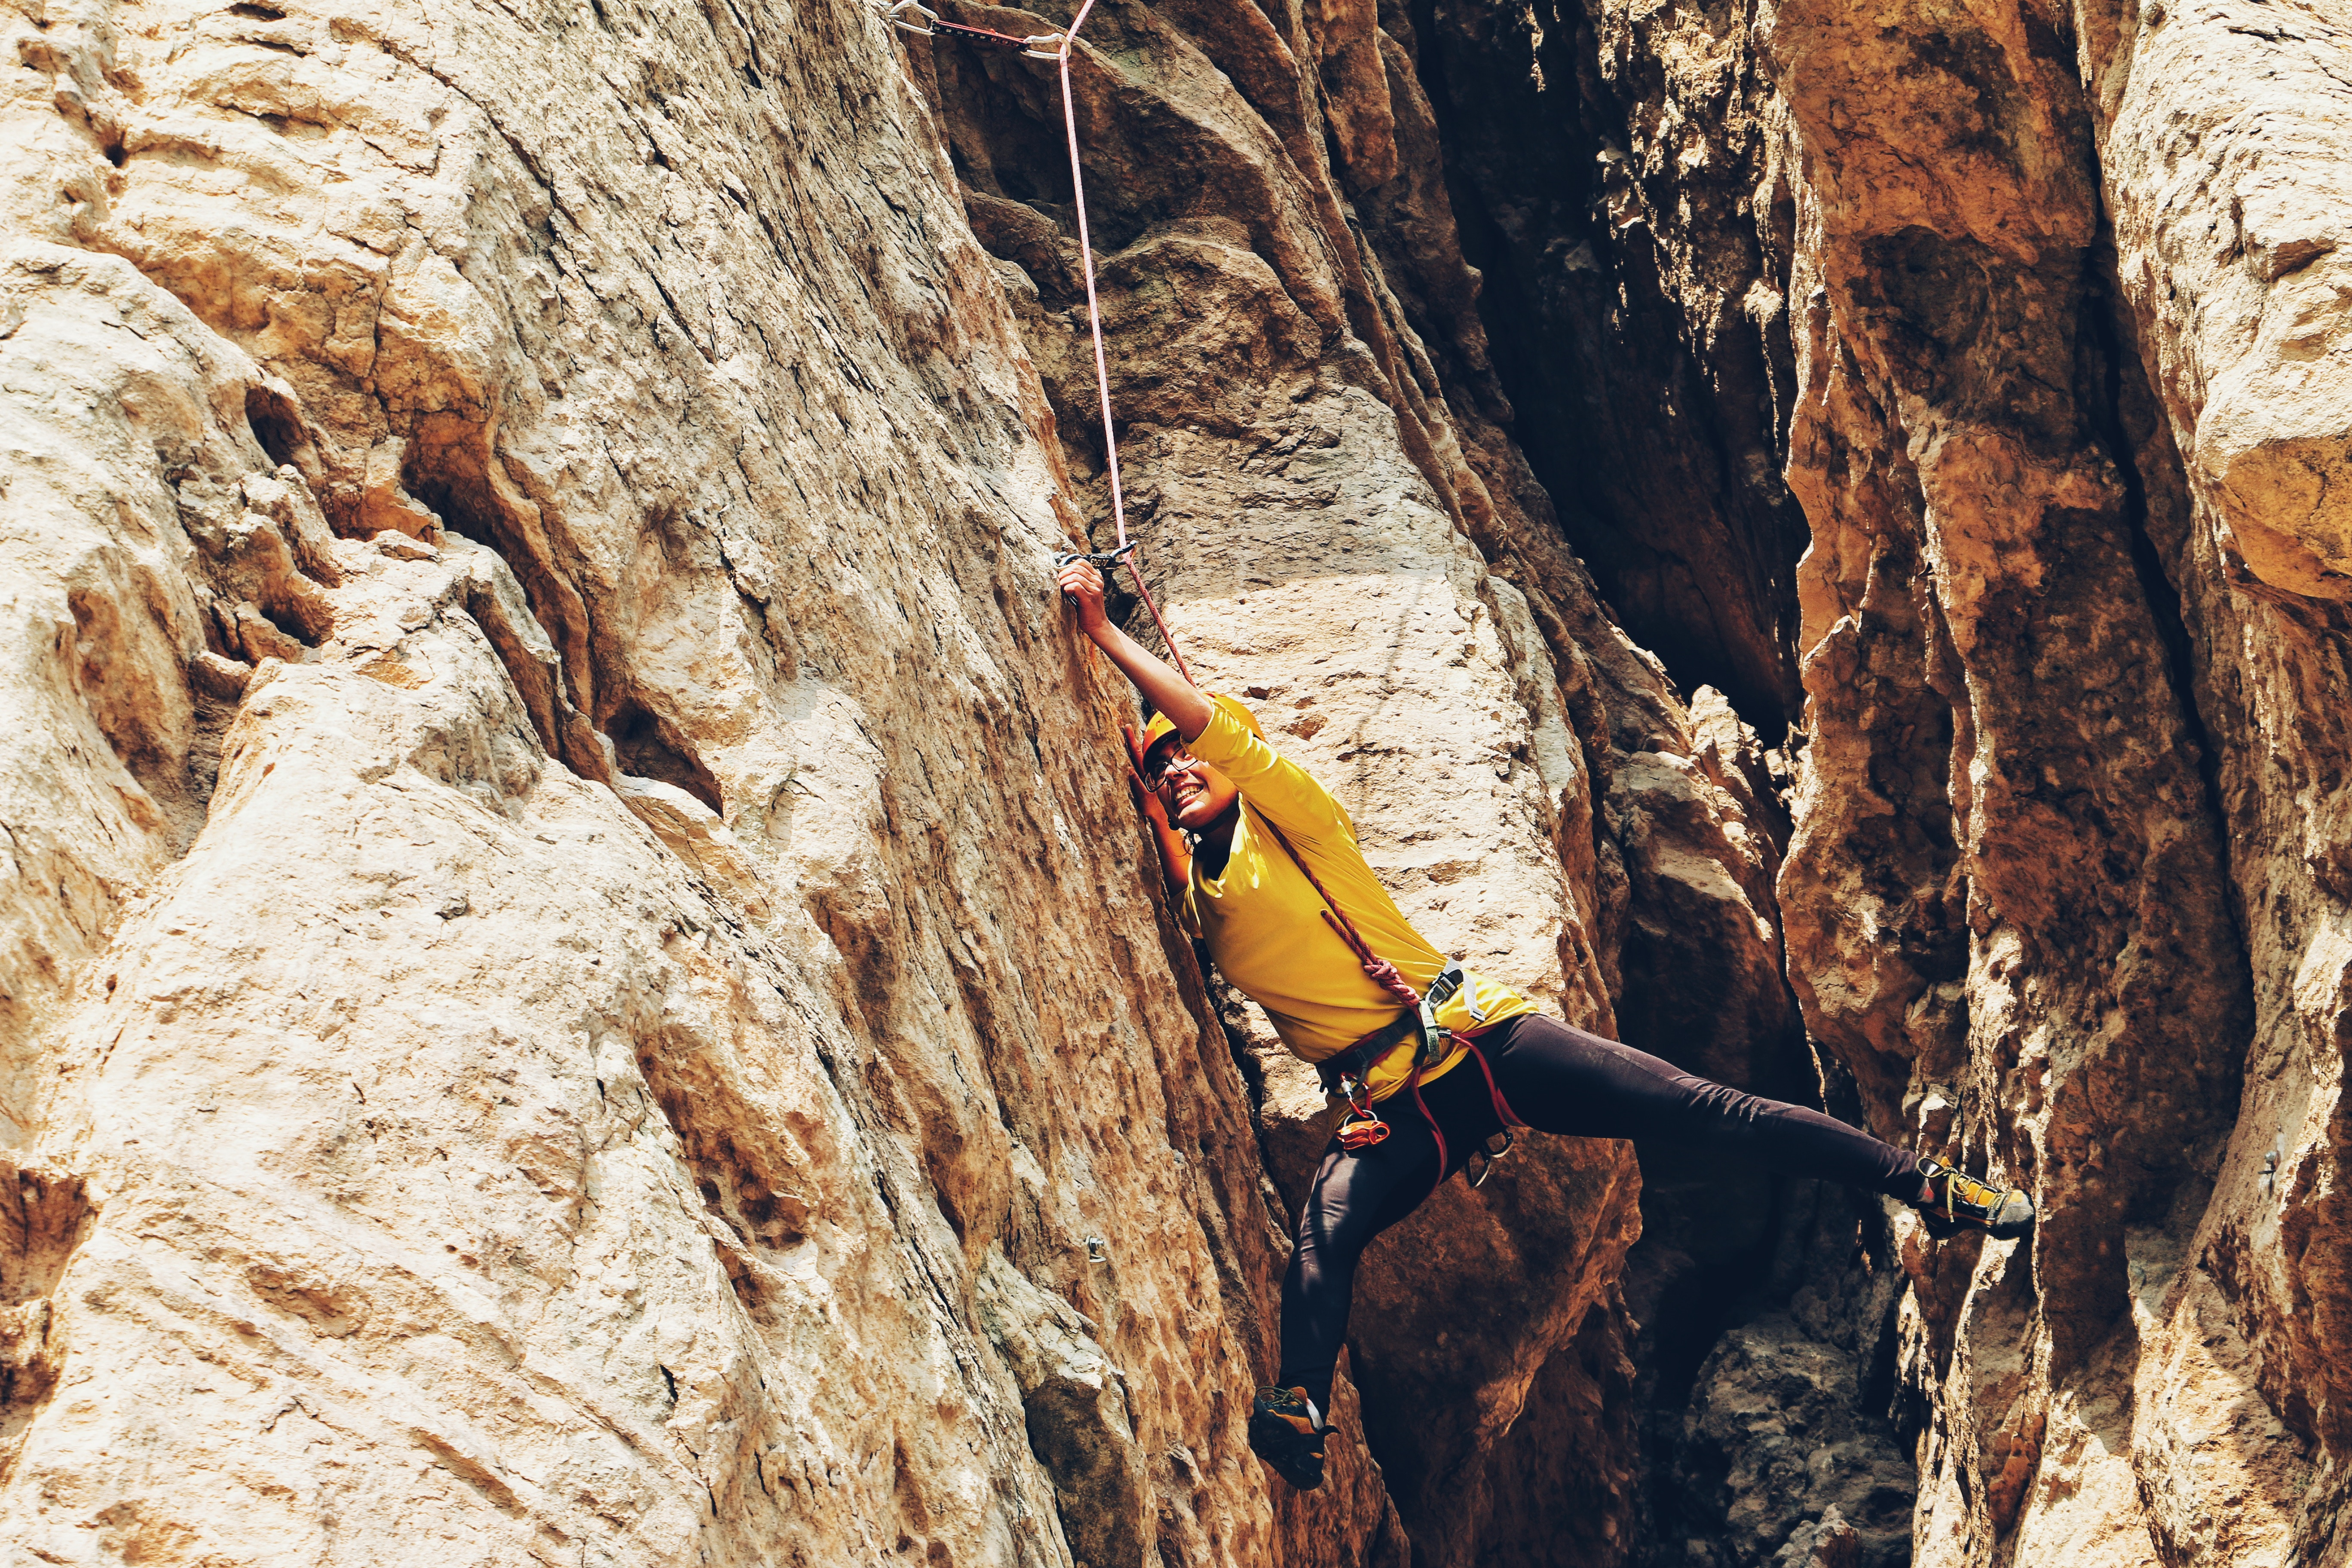 Rock climber problem solving a route outside